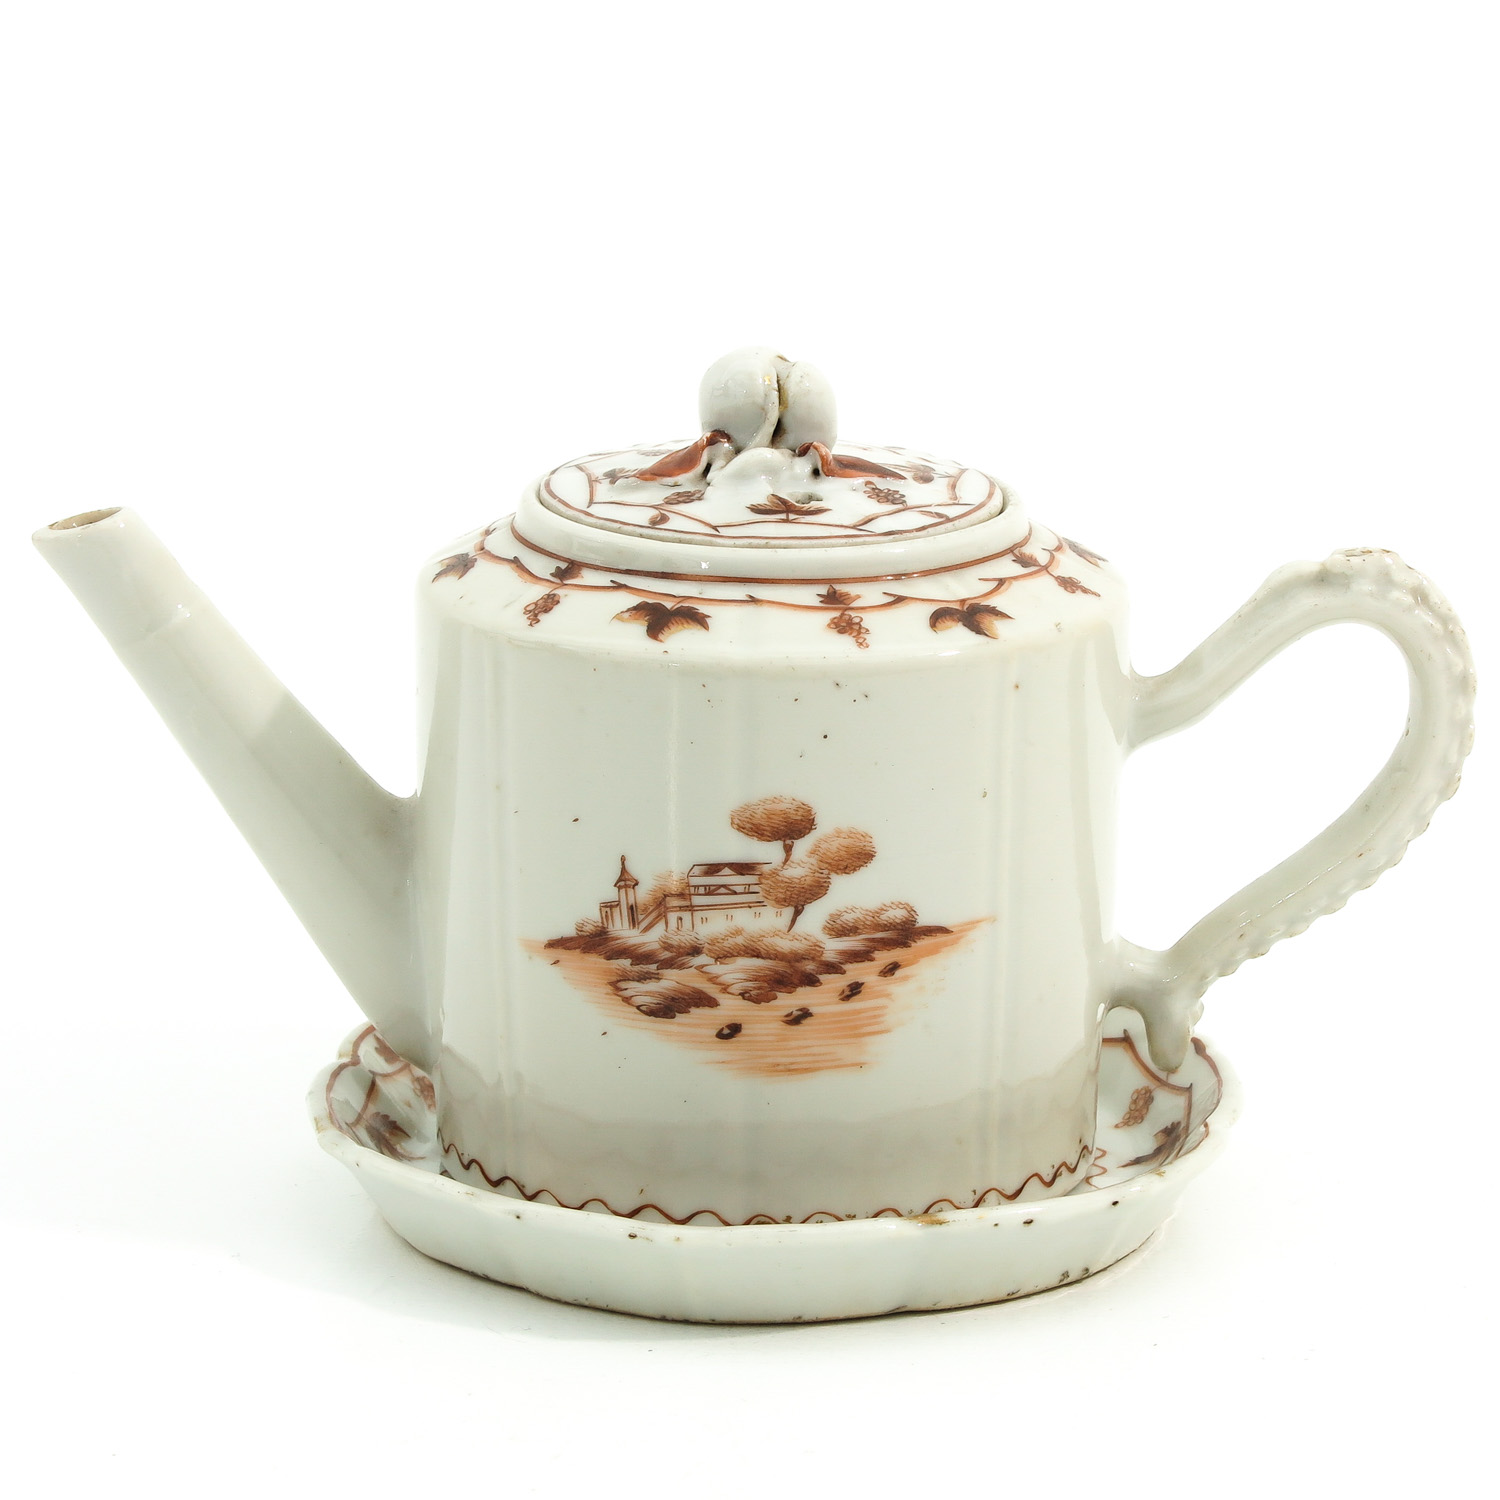 A Teapot and Small Dish